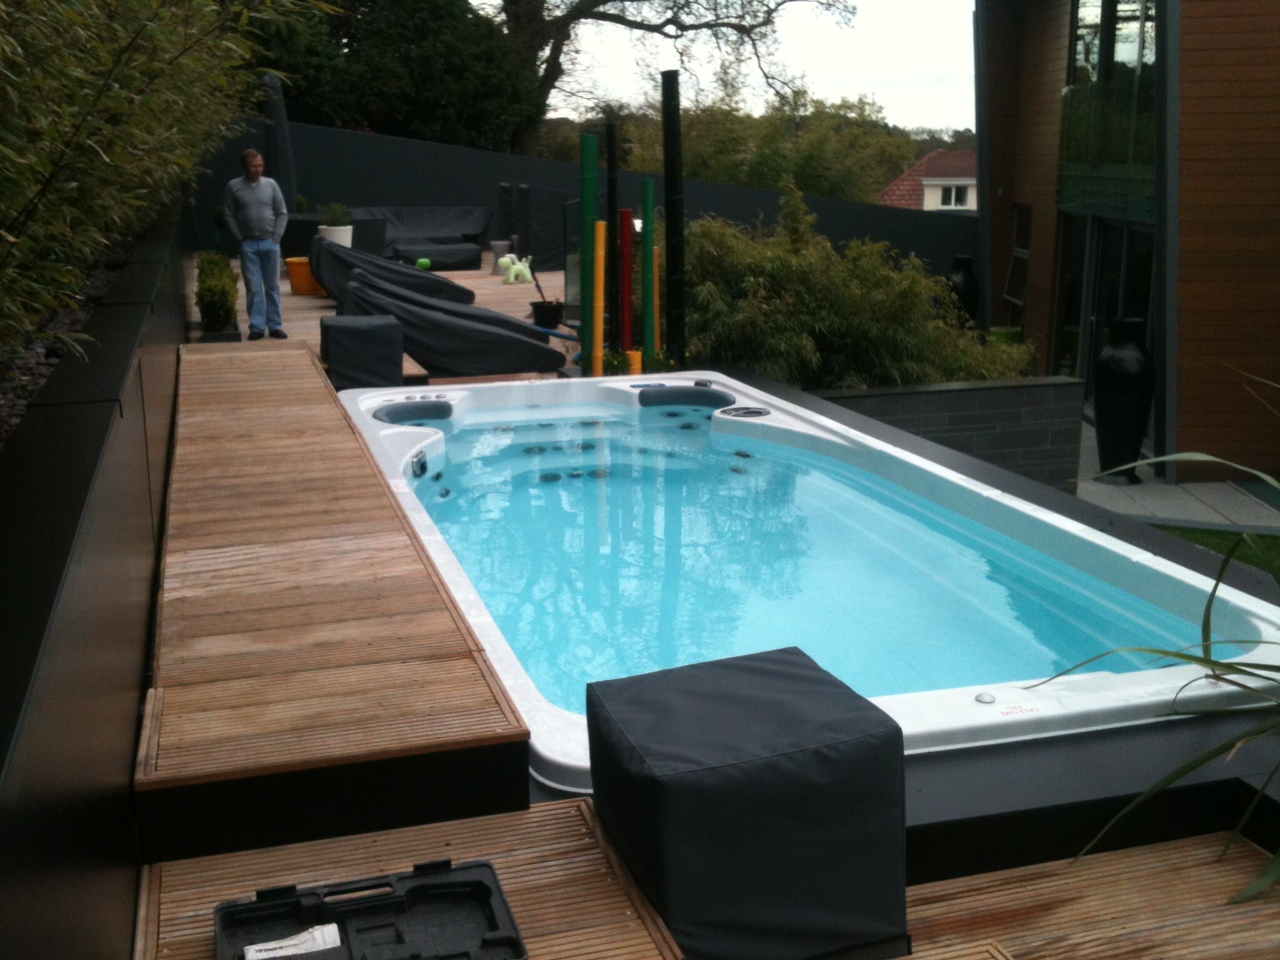 Swimming pool spa 14 fx aquatrainer by hydropool for Spa swimming pool